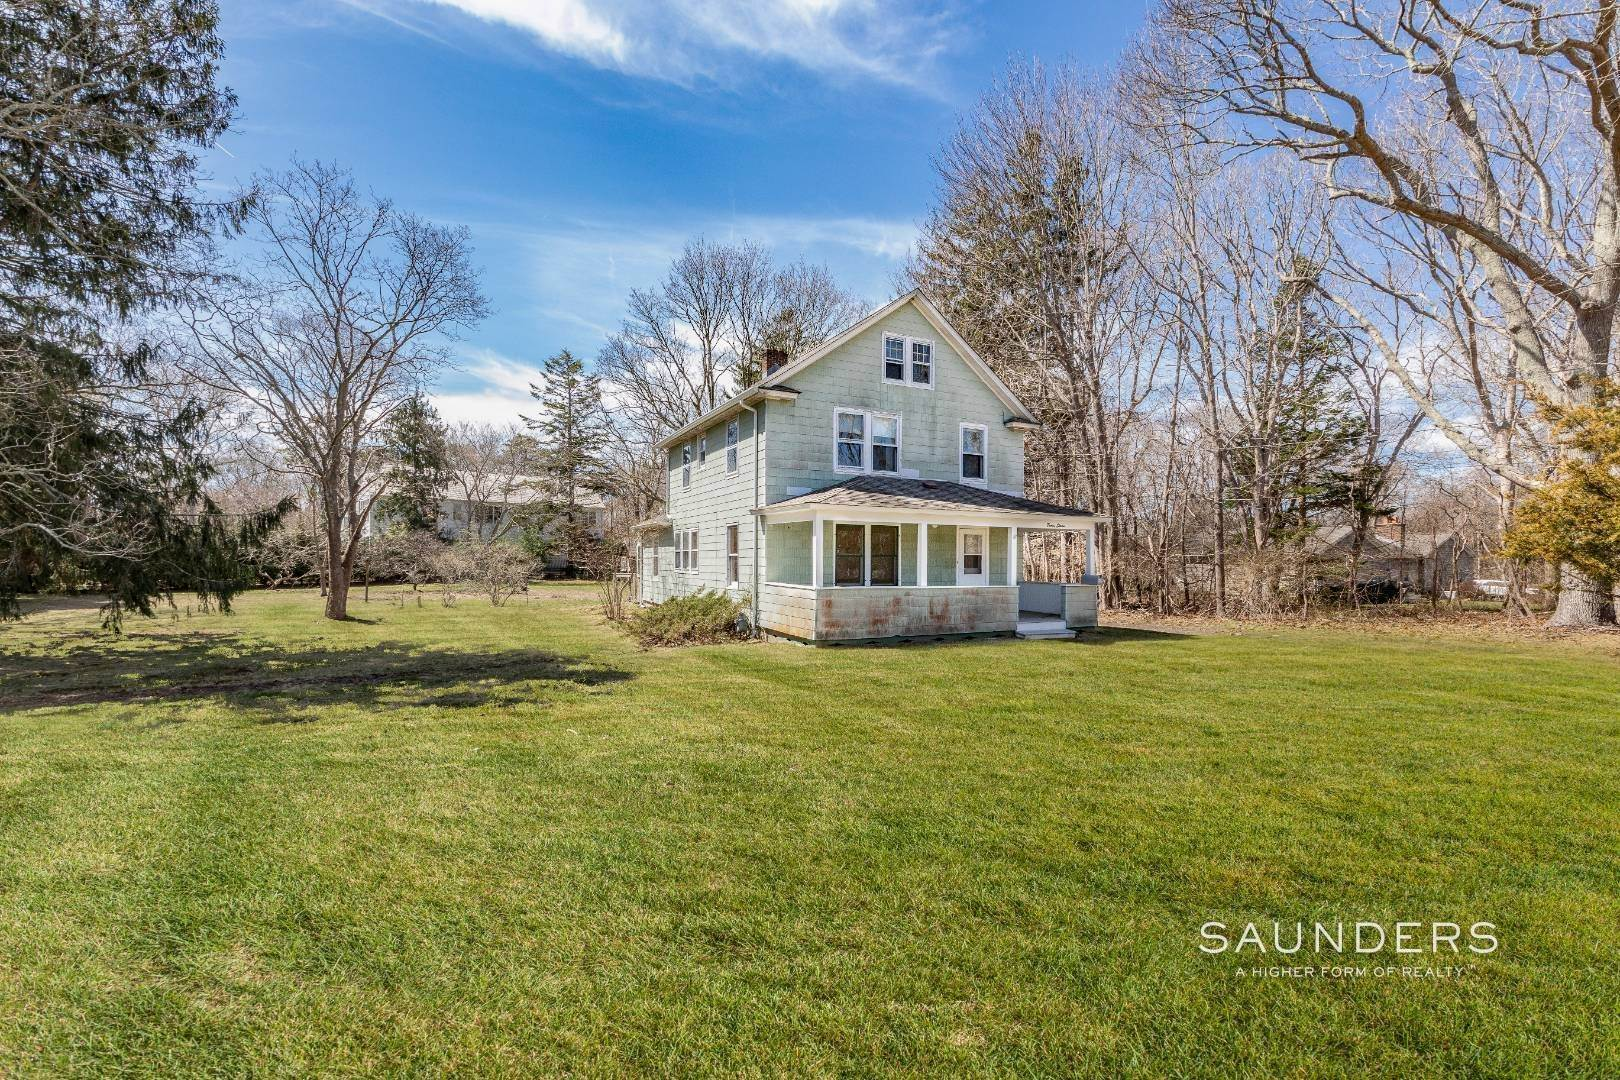 Single Family Homes for Sale at Renovate Or Build New! Prime 1.1 Acres! Eh Village Fringe! 37 Oak View Highway, East Hampton, East Hampton Town, NY 11937